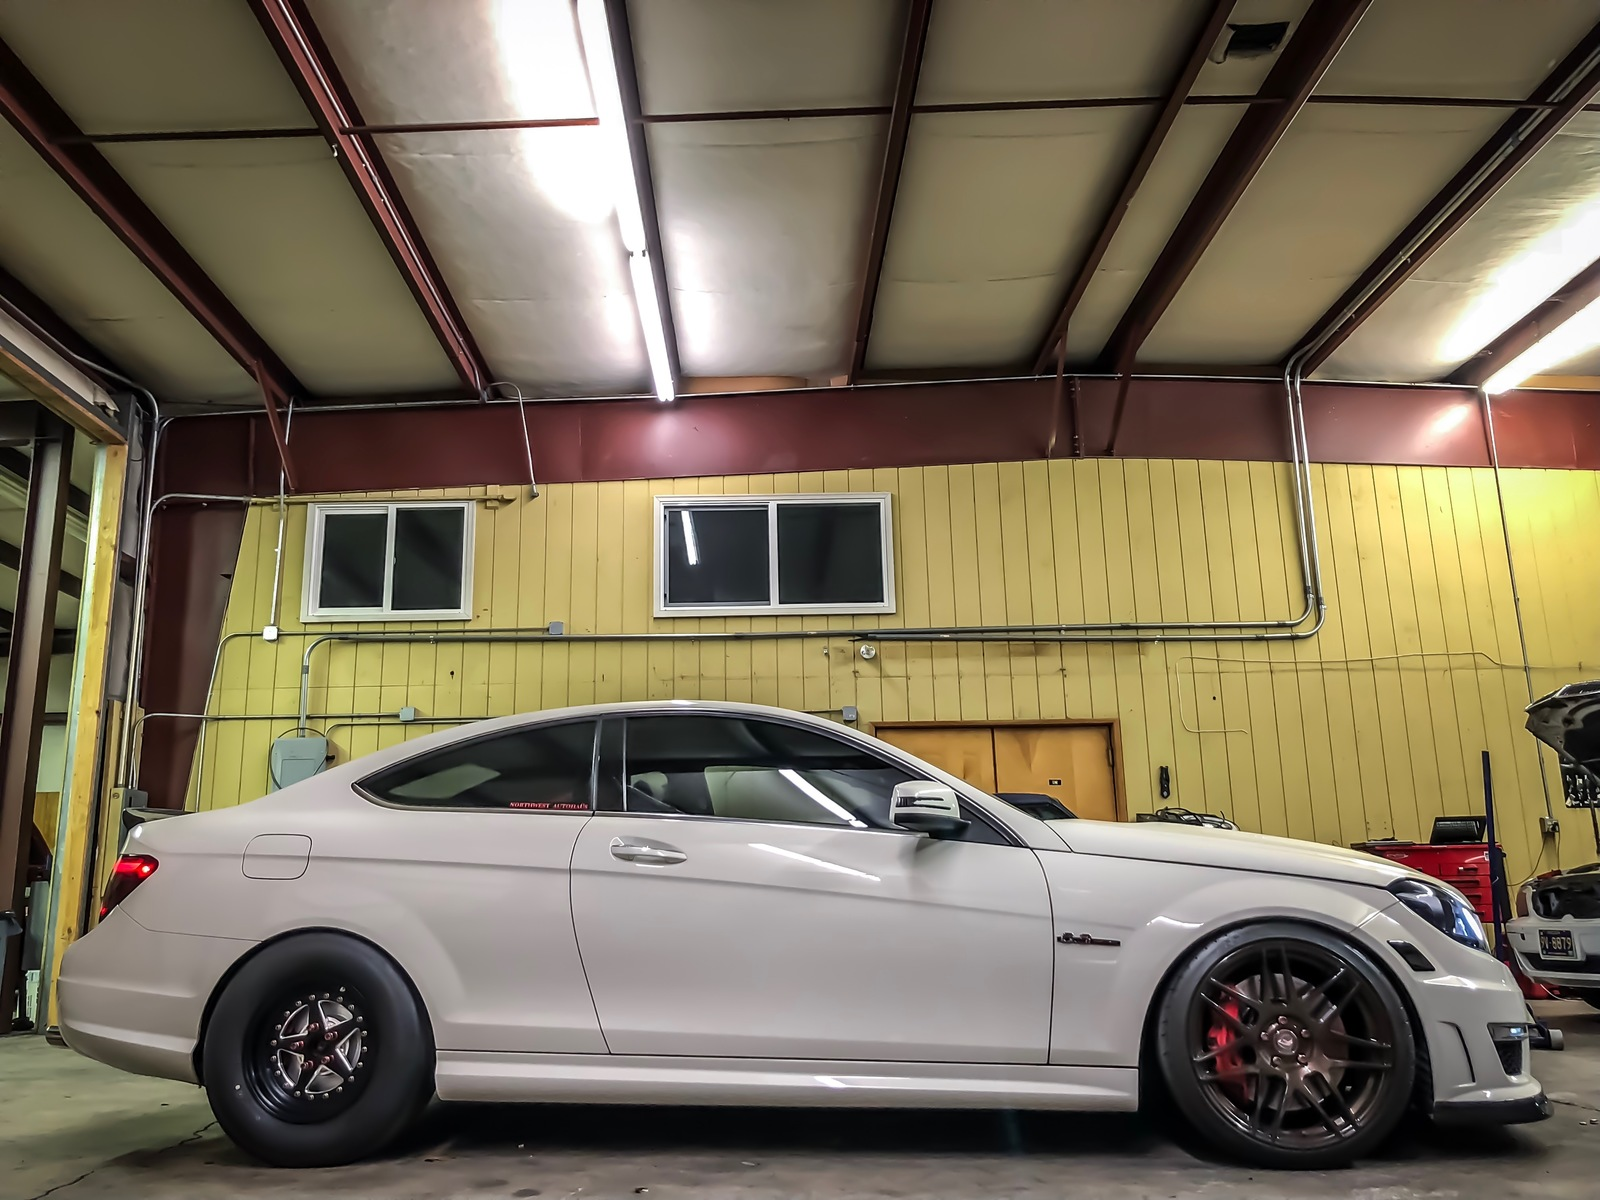 2012 Mercedes-Benz C63 AMG Weistec stage 3 1/4 mile trap